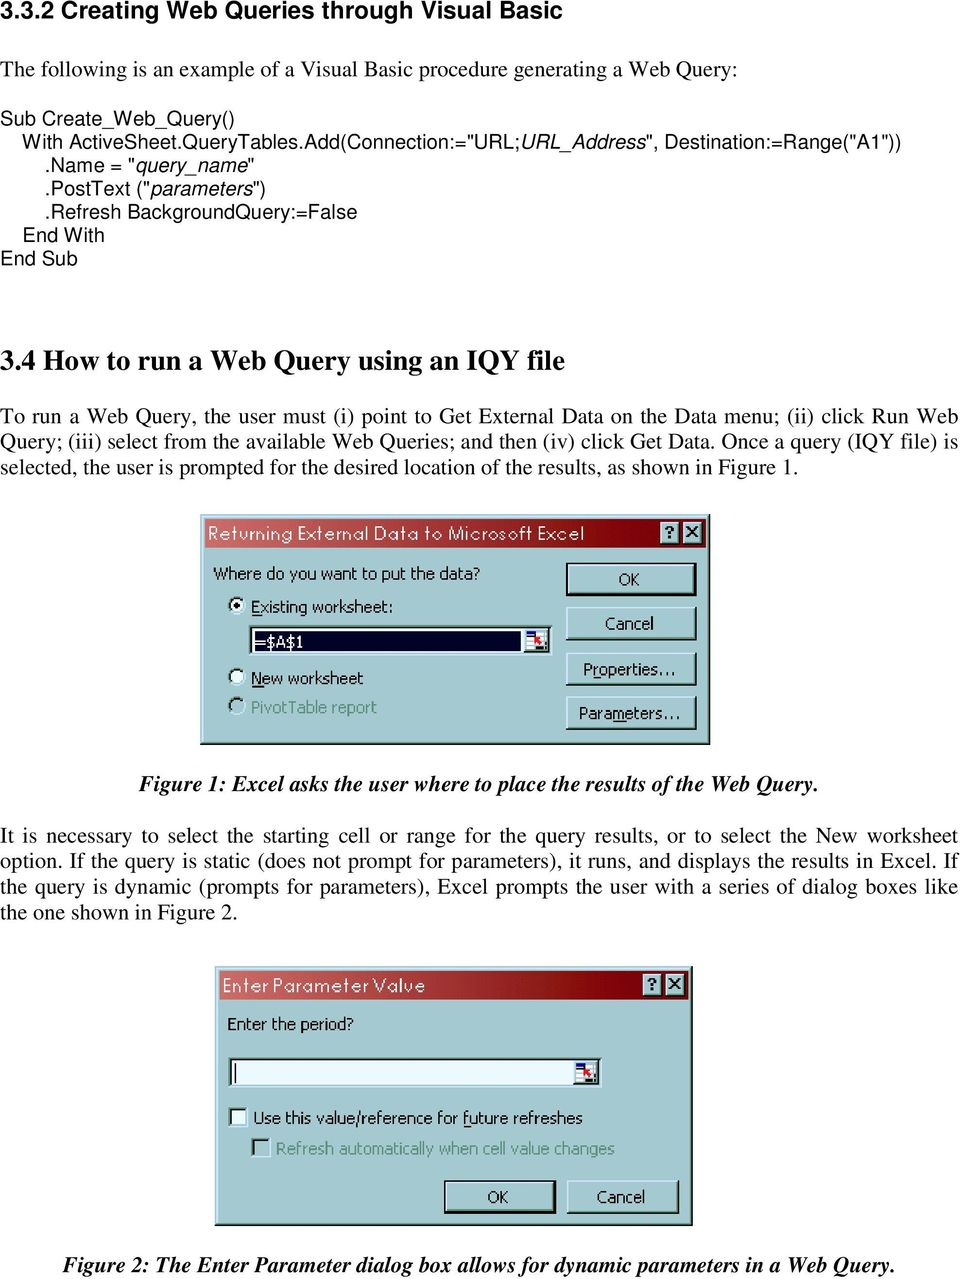 Data Collection on the World Wide Web using Excel 1 - PDF